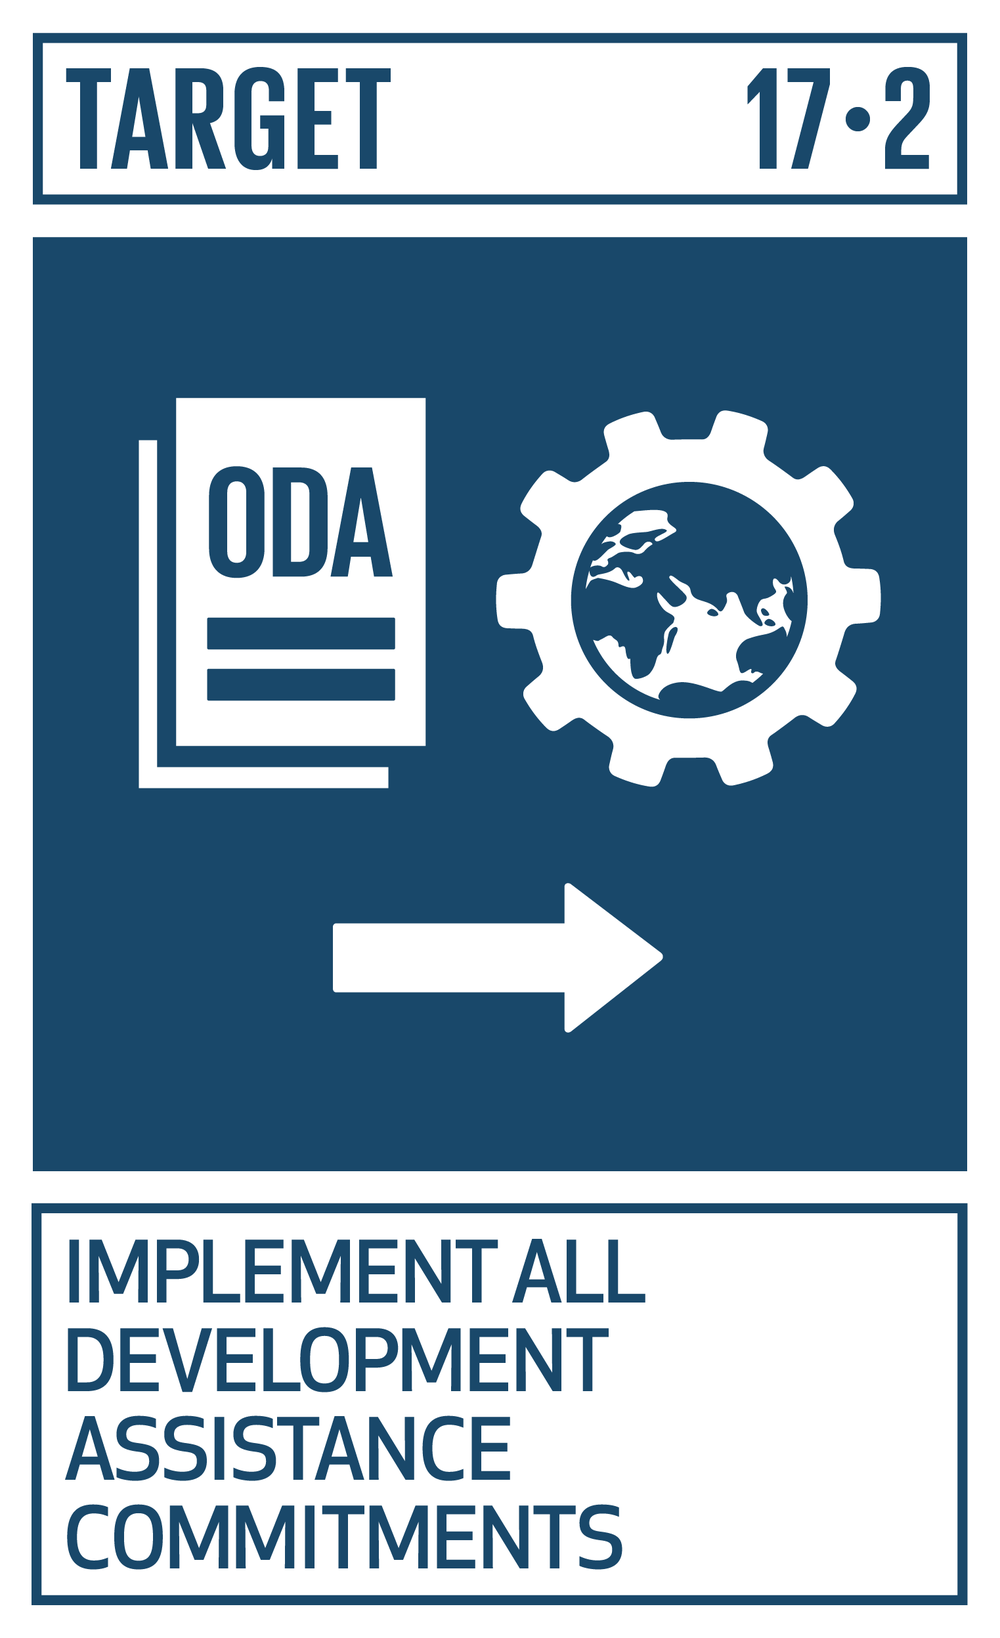 FINANCE TARGET   Developed countries to implement fully their official development assistance commitments, including the commitment by many developed countries to achieve the target of 0.7 per cent of gross national income for official development assistance (ODA/GNI) to developing countries and 0.15 to 0.20 per cent of ODA/GNI to least developed countries; ODA providers are encouraged to consider setting a target to provide at least 0.20 per cent of ODA/GNI to least developed countries.   INDICATOR    17.2.1  Net official development assistance, total and to least developed countries, as a proportion of the Organization for Economic Cooperation and Development (OECD) Development Assistance Committee donors' gross national income (GNI)